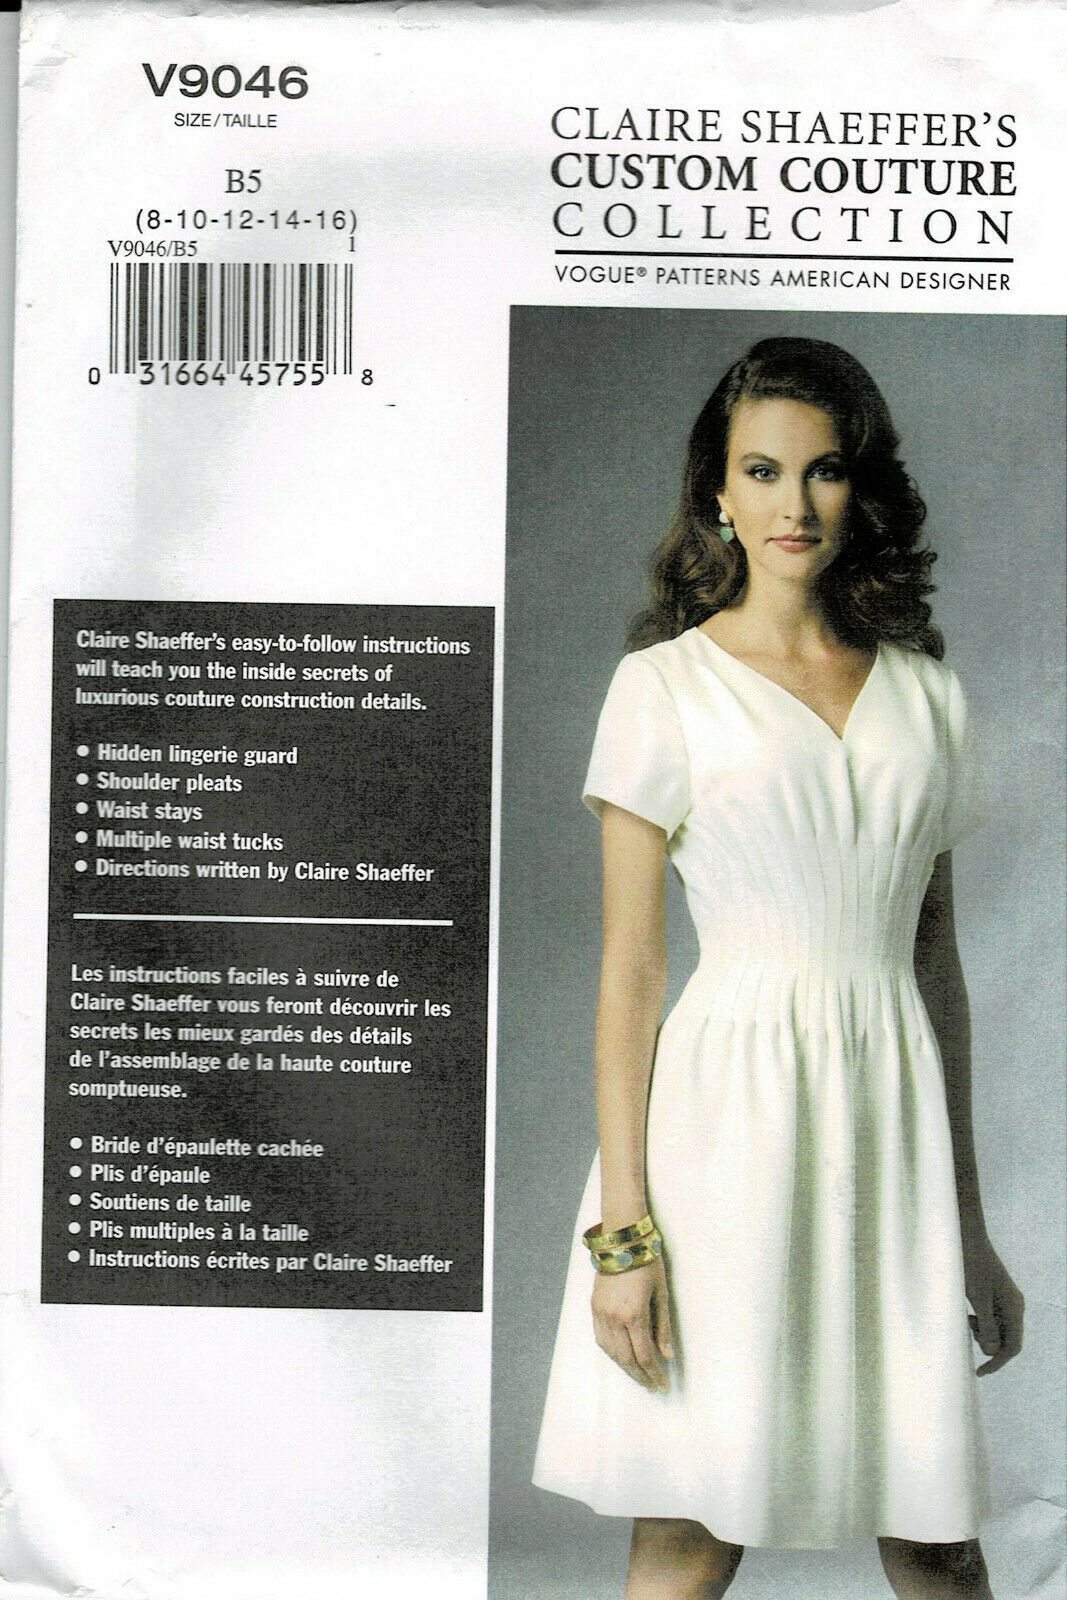 Primary image for Vogue Pattern V9046 Claire Sharffers Couture Collection Dress Szs 8-16  New